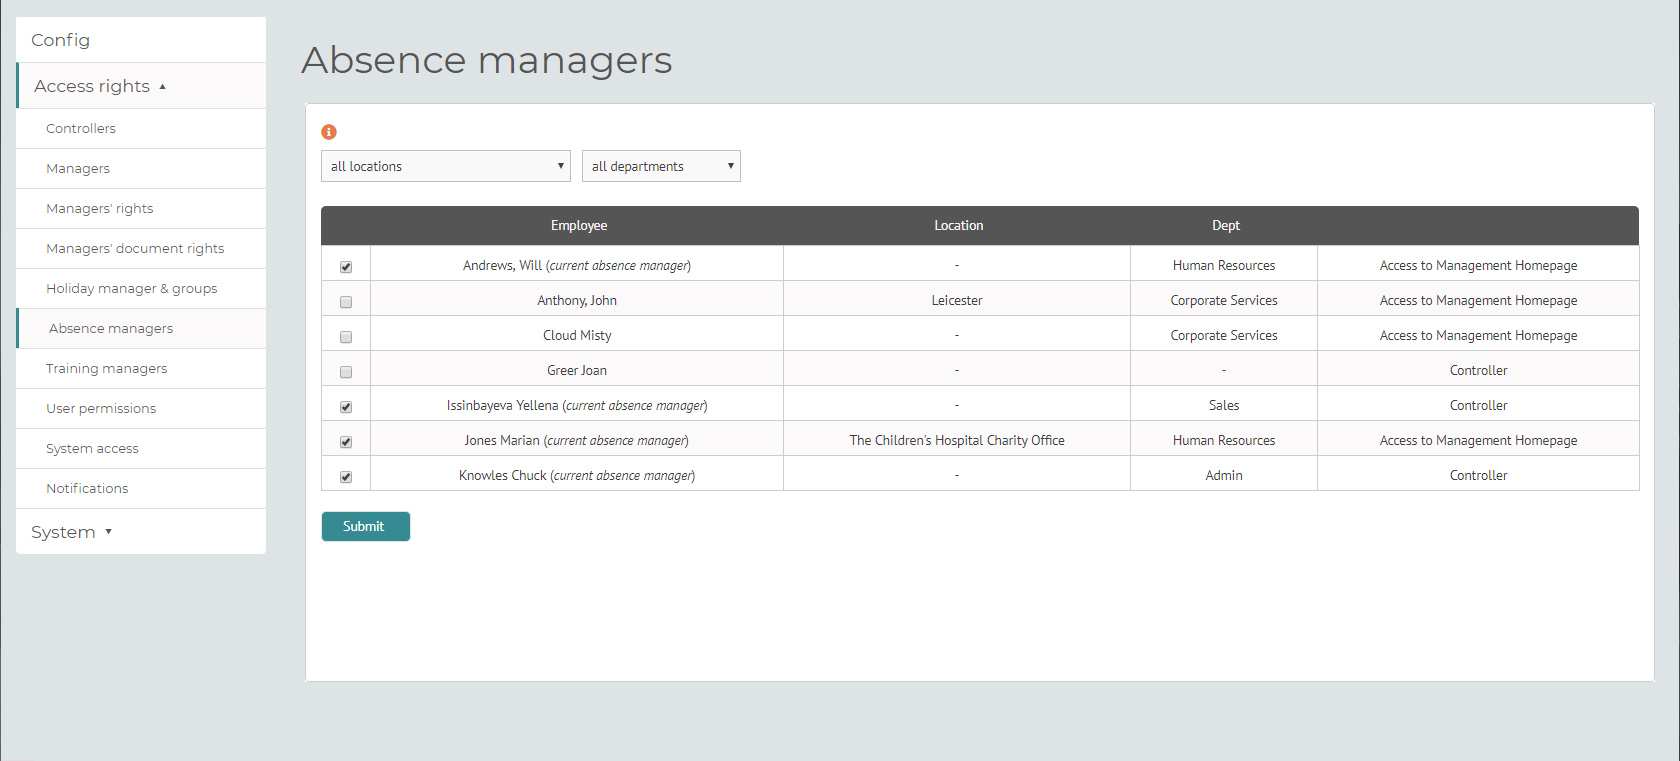 myhrtoolkit config absence managers